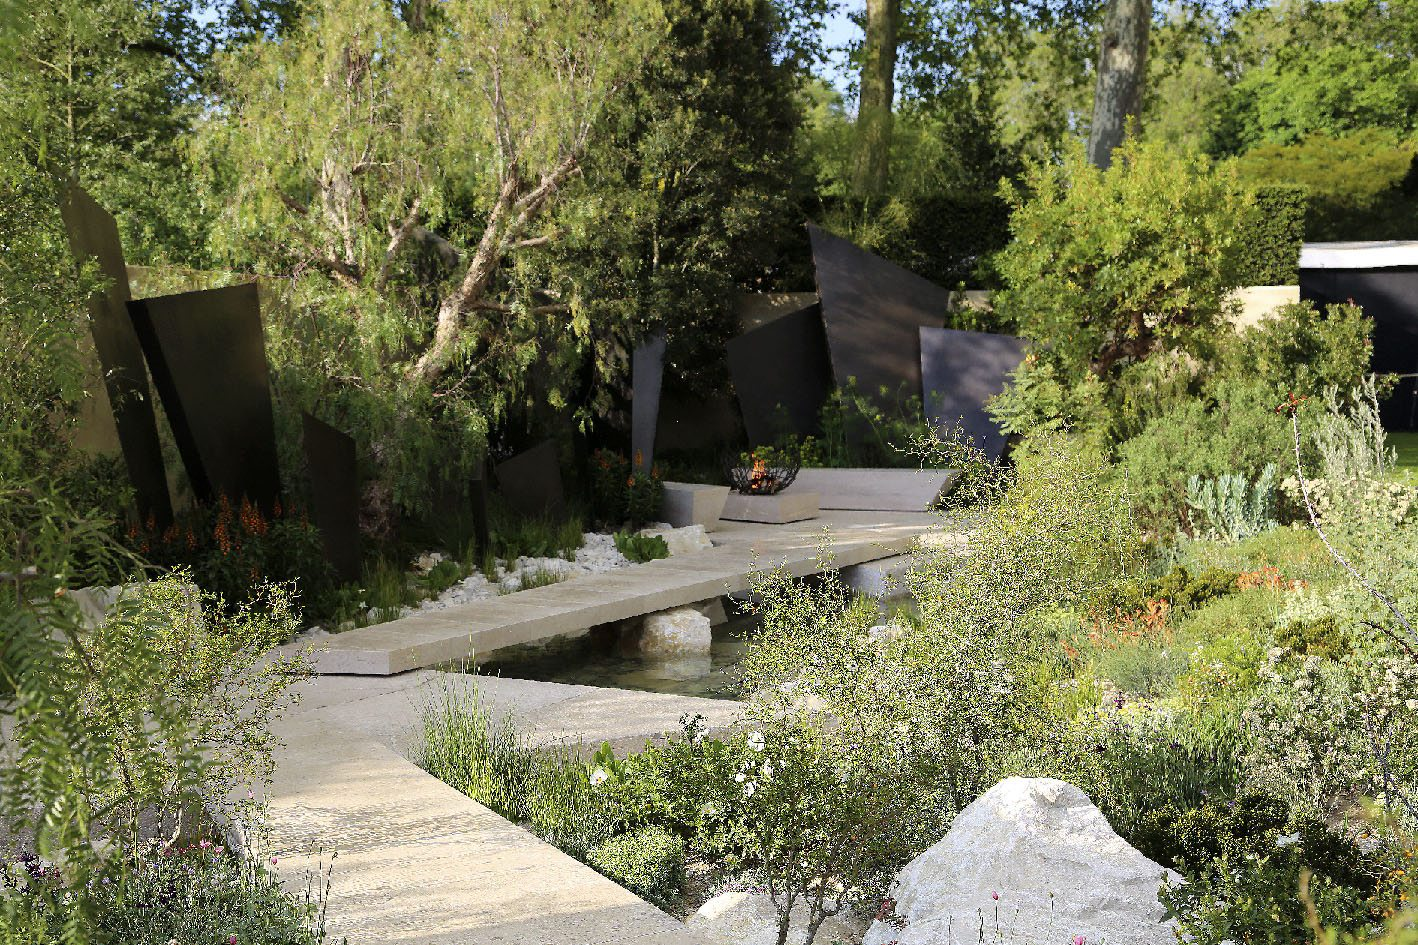 Chelsea Flower Show 2016, Telegraph Garden designed by Andy Sturgeon